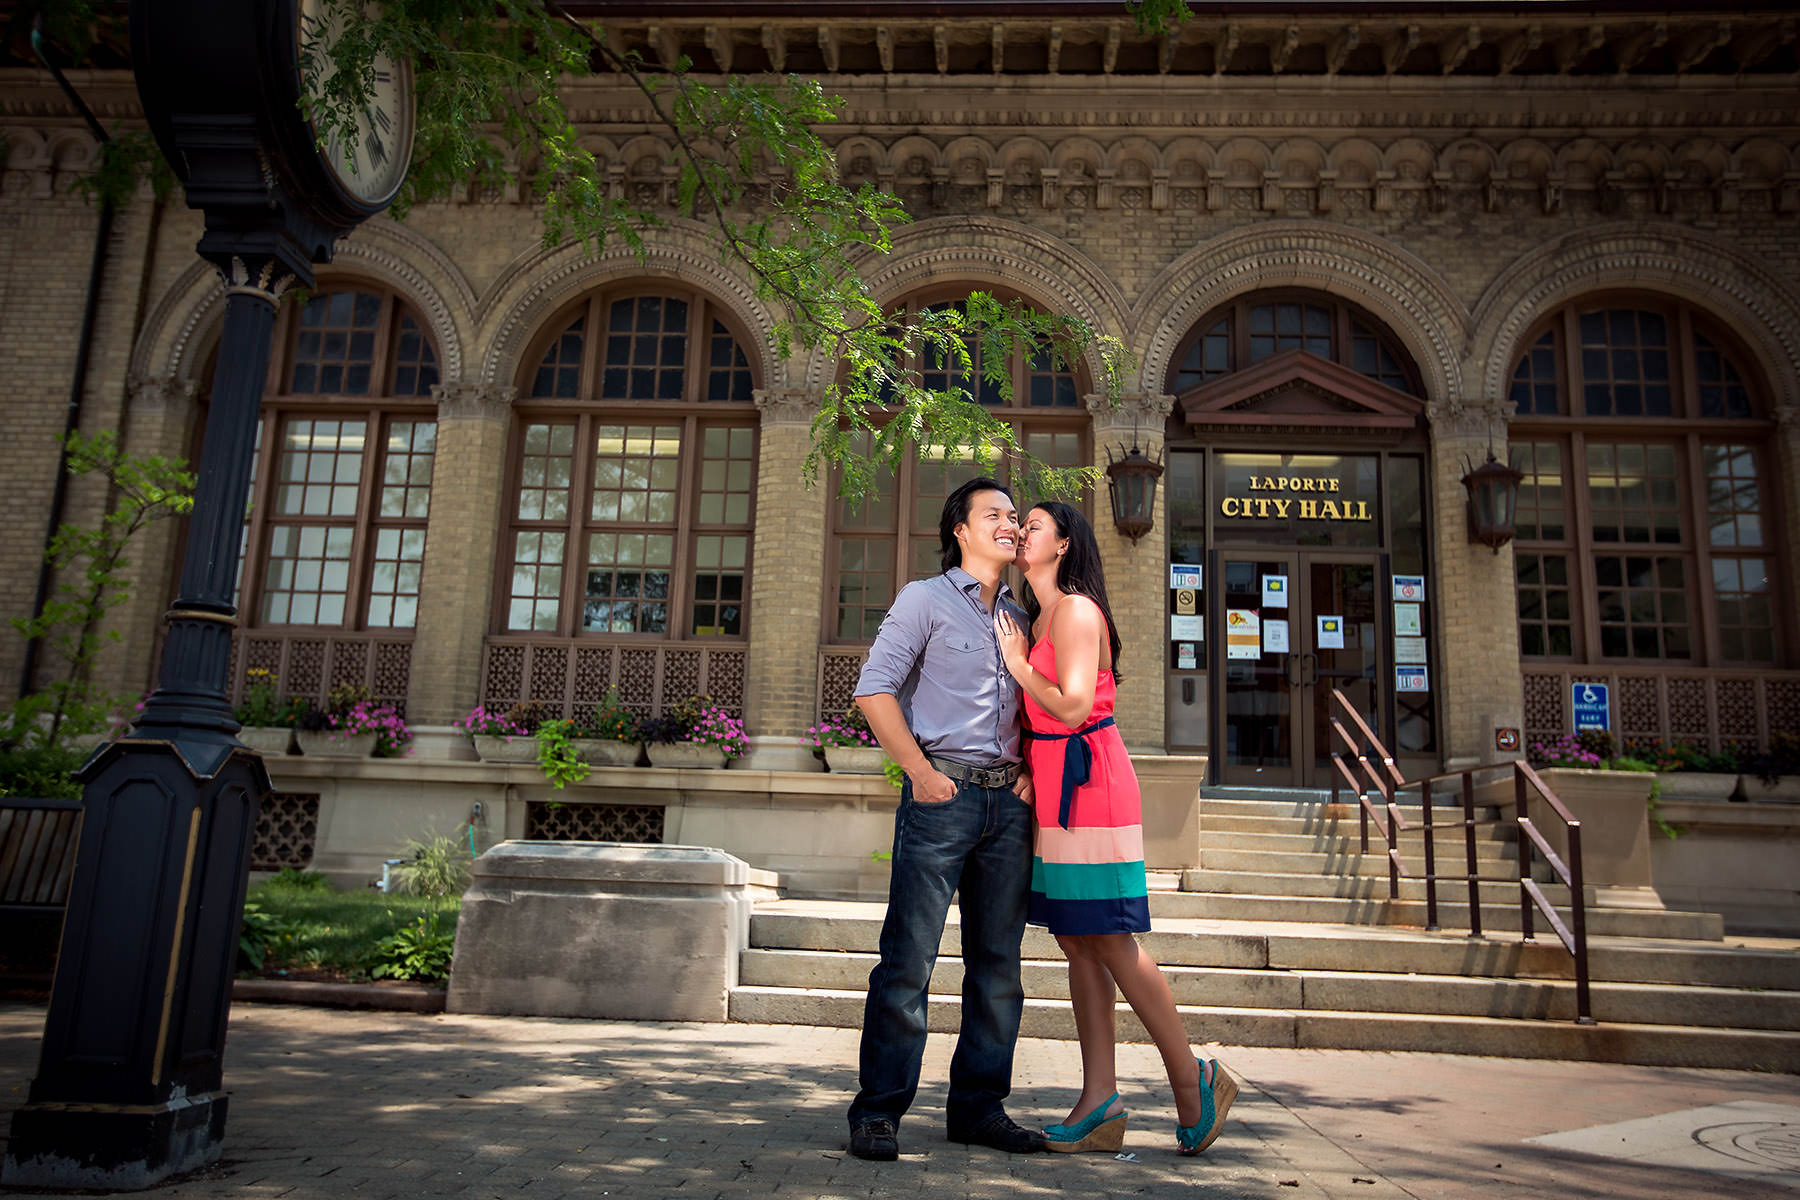 La Porte fun Indiana engagement photography session – Natalie + Jae